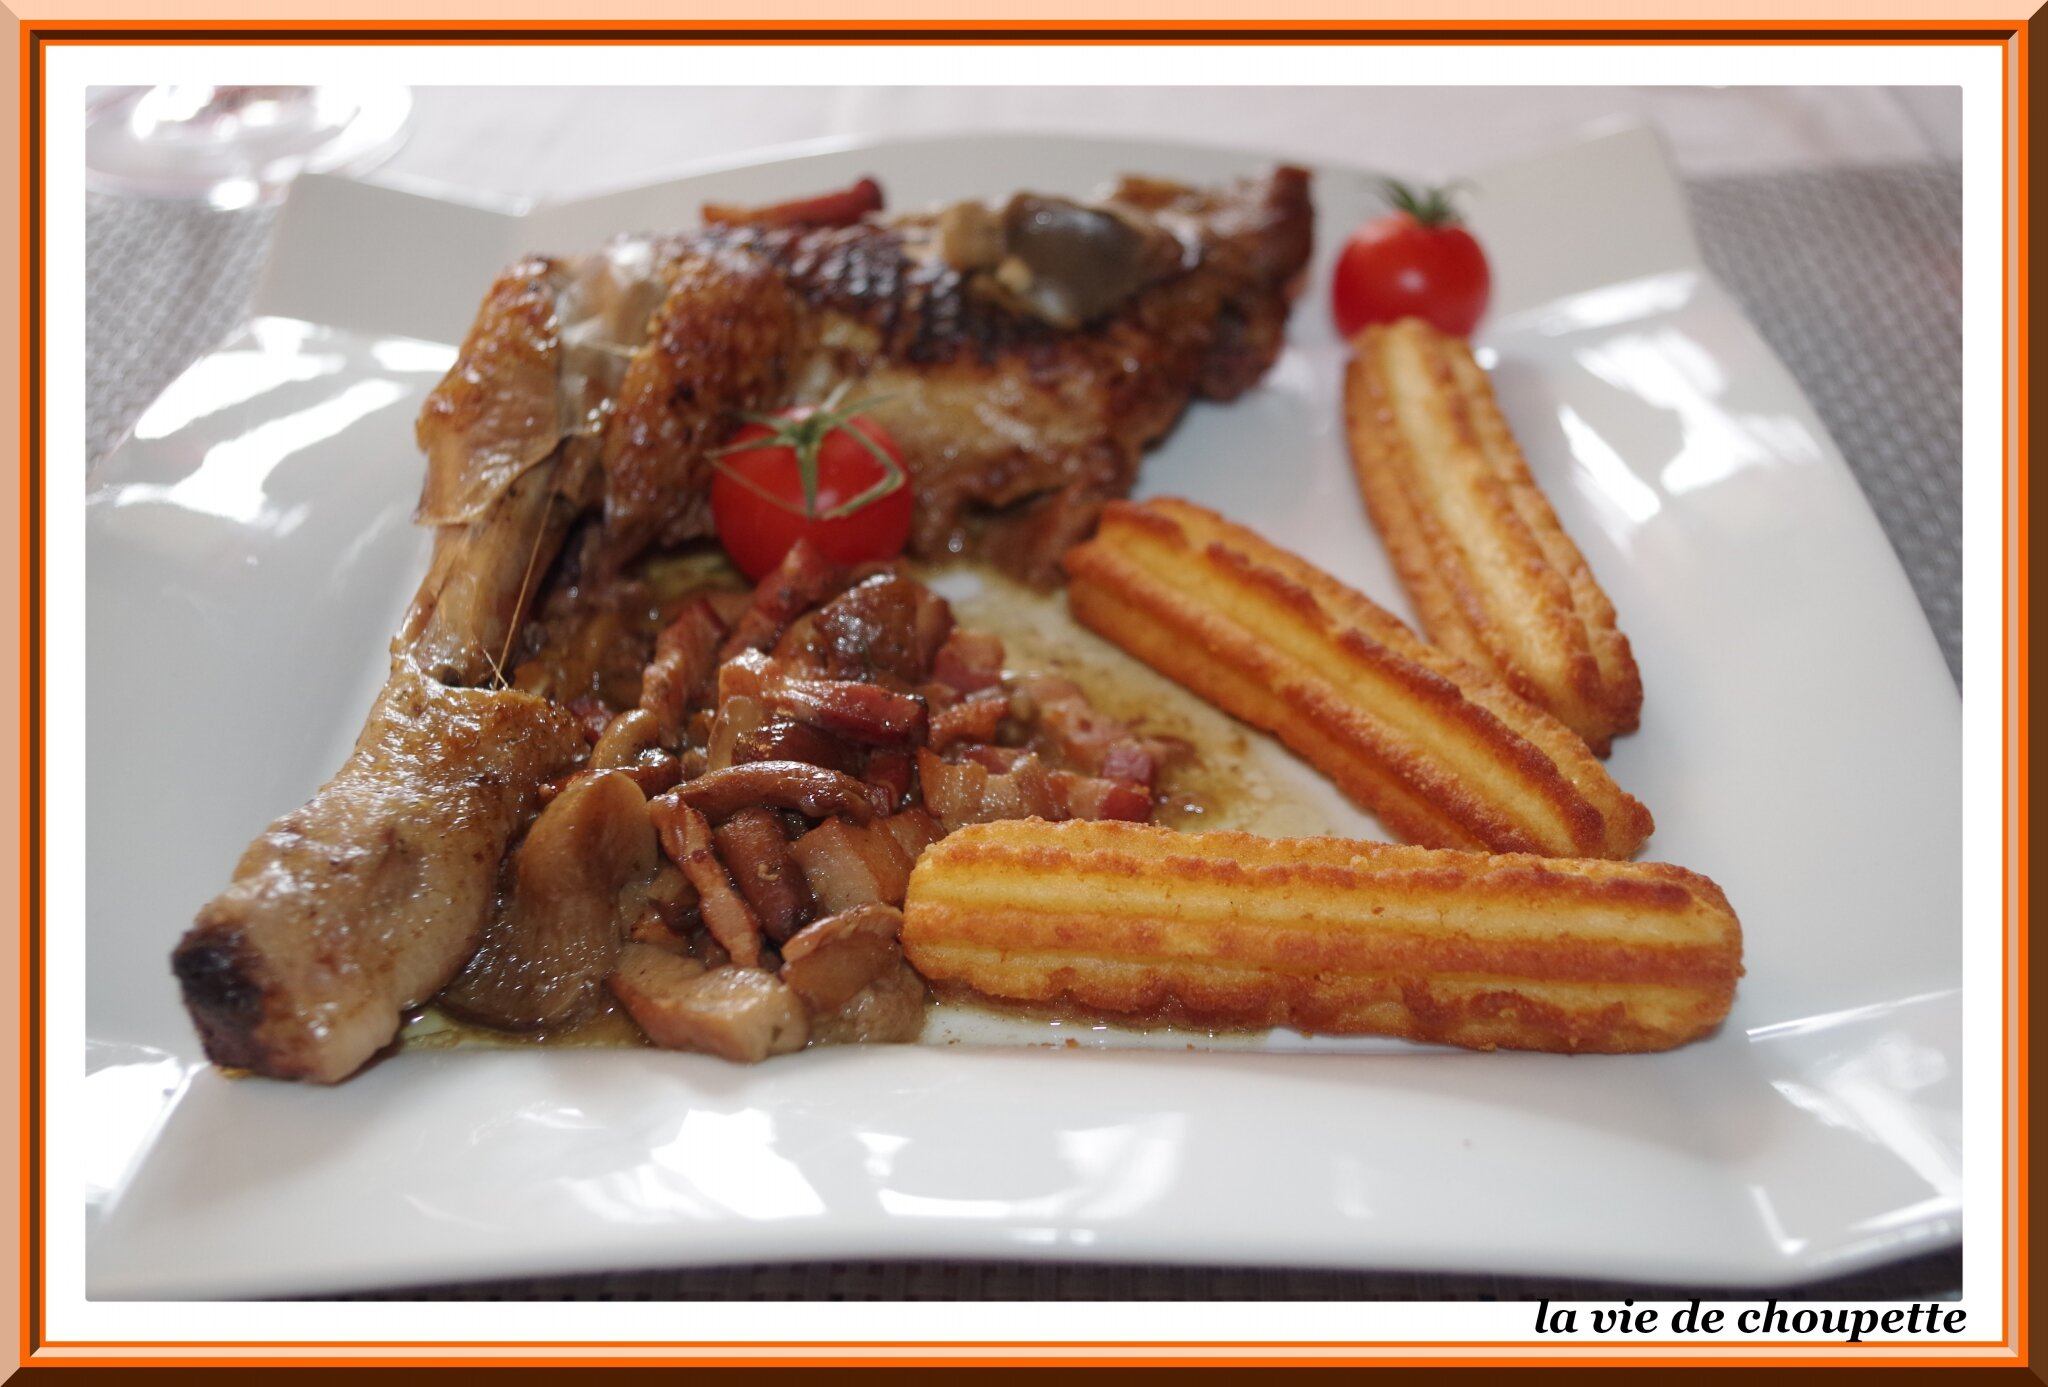 FRICASSEE DE POULET AUX GIROLLES